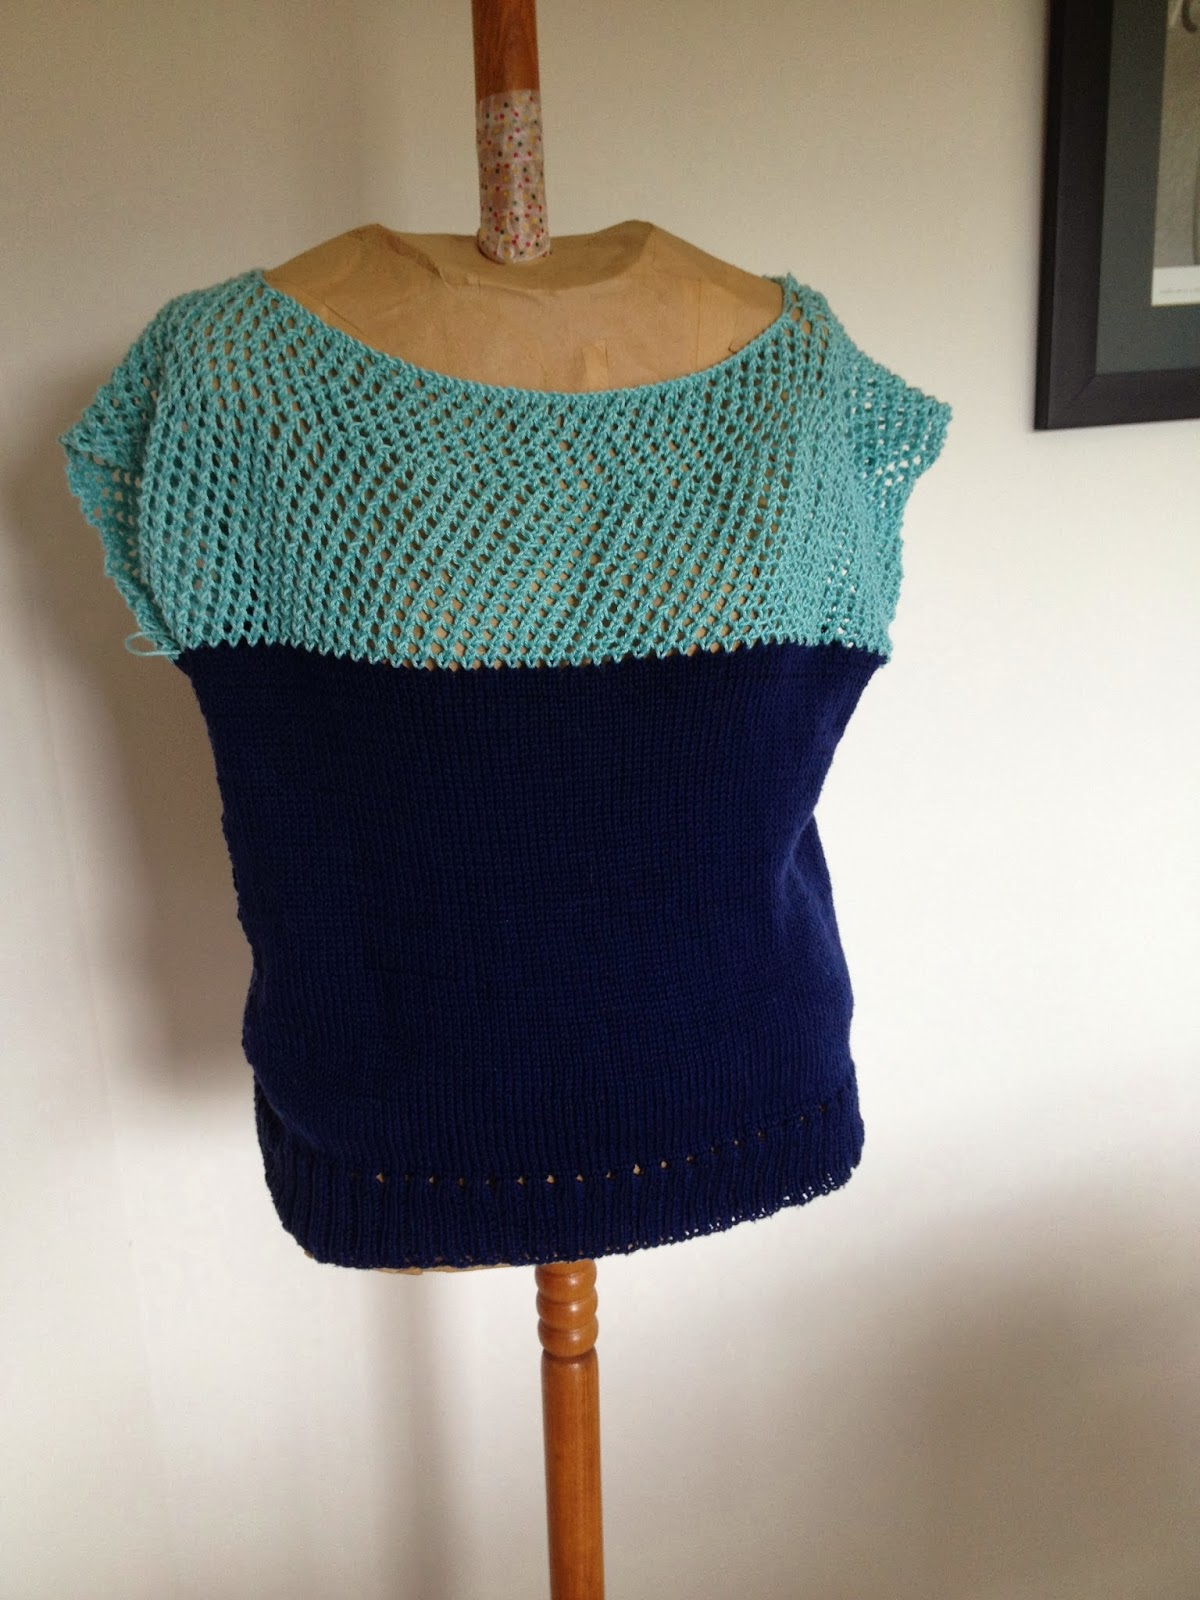 Finished - Purl Soho sweater version 2!